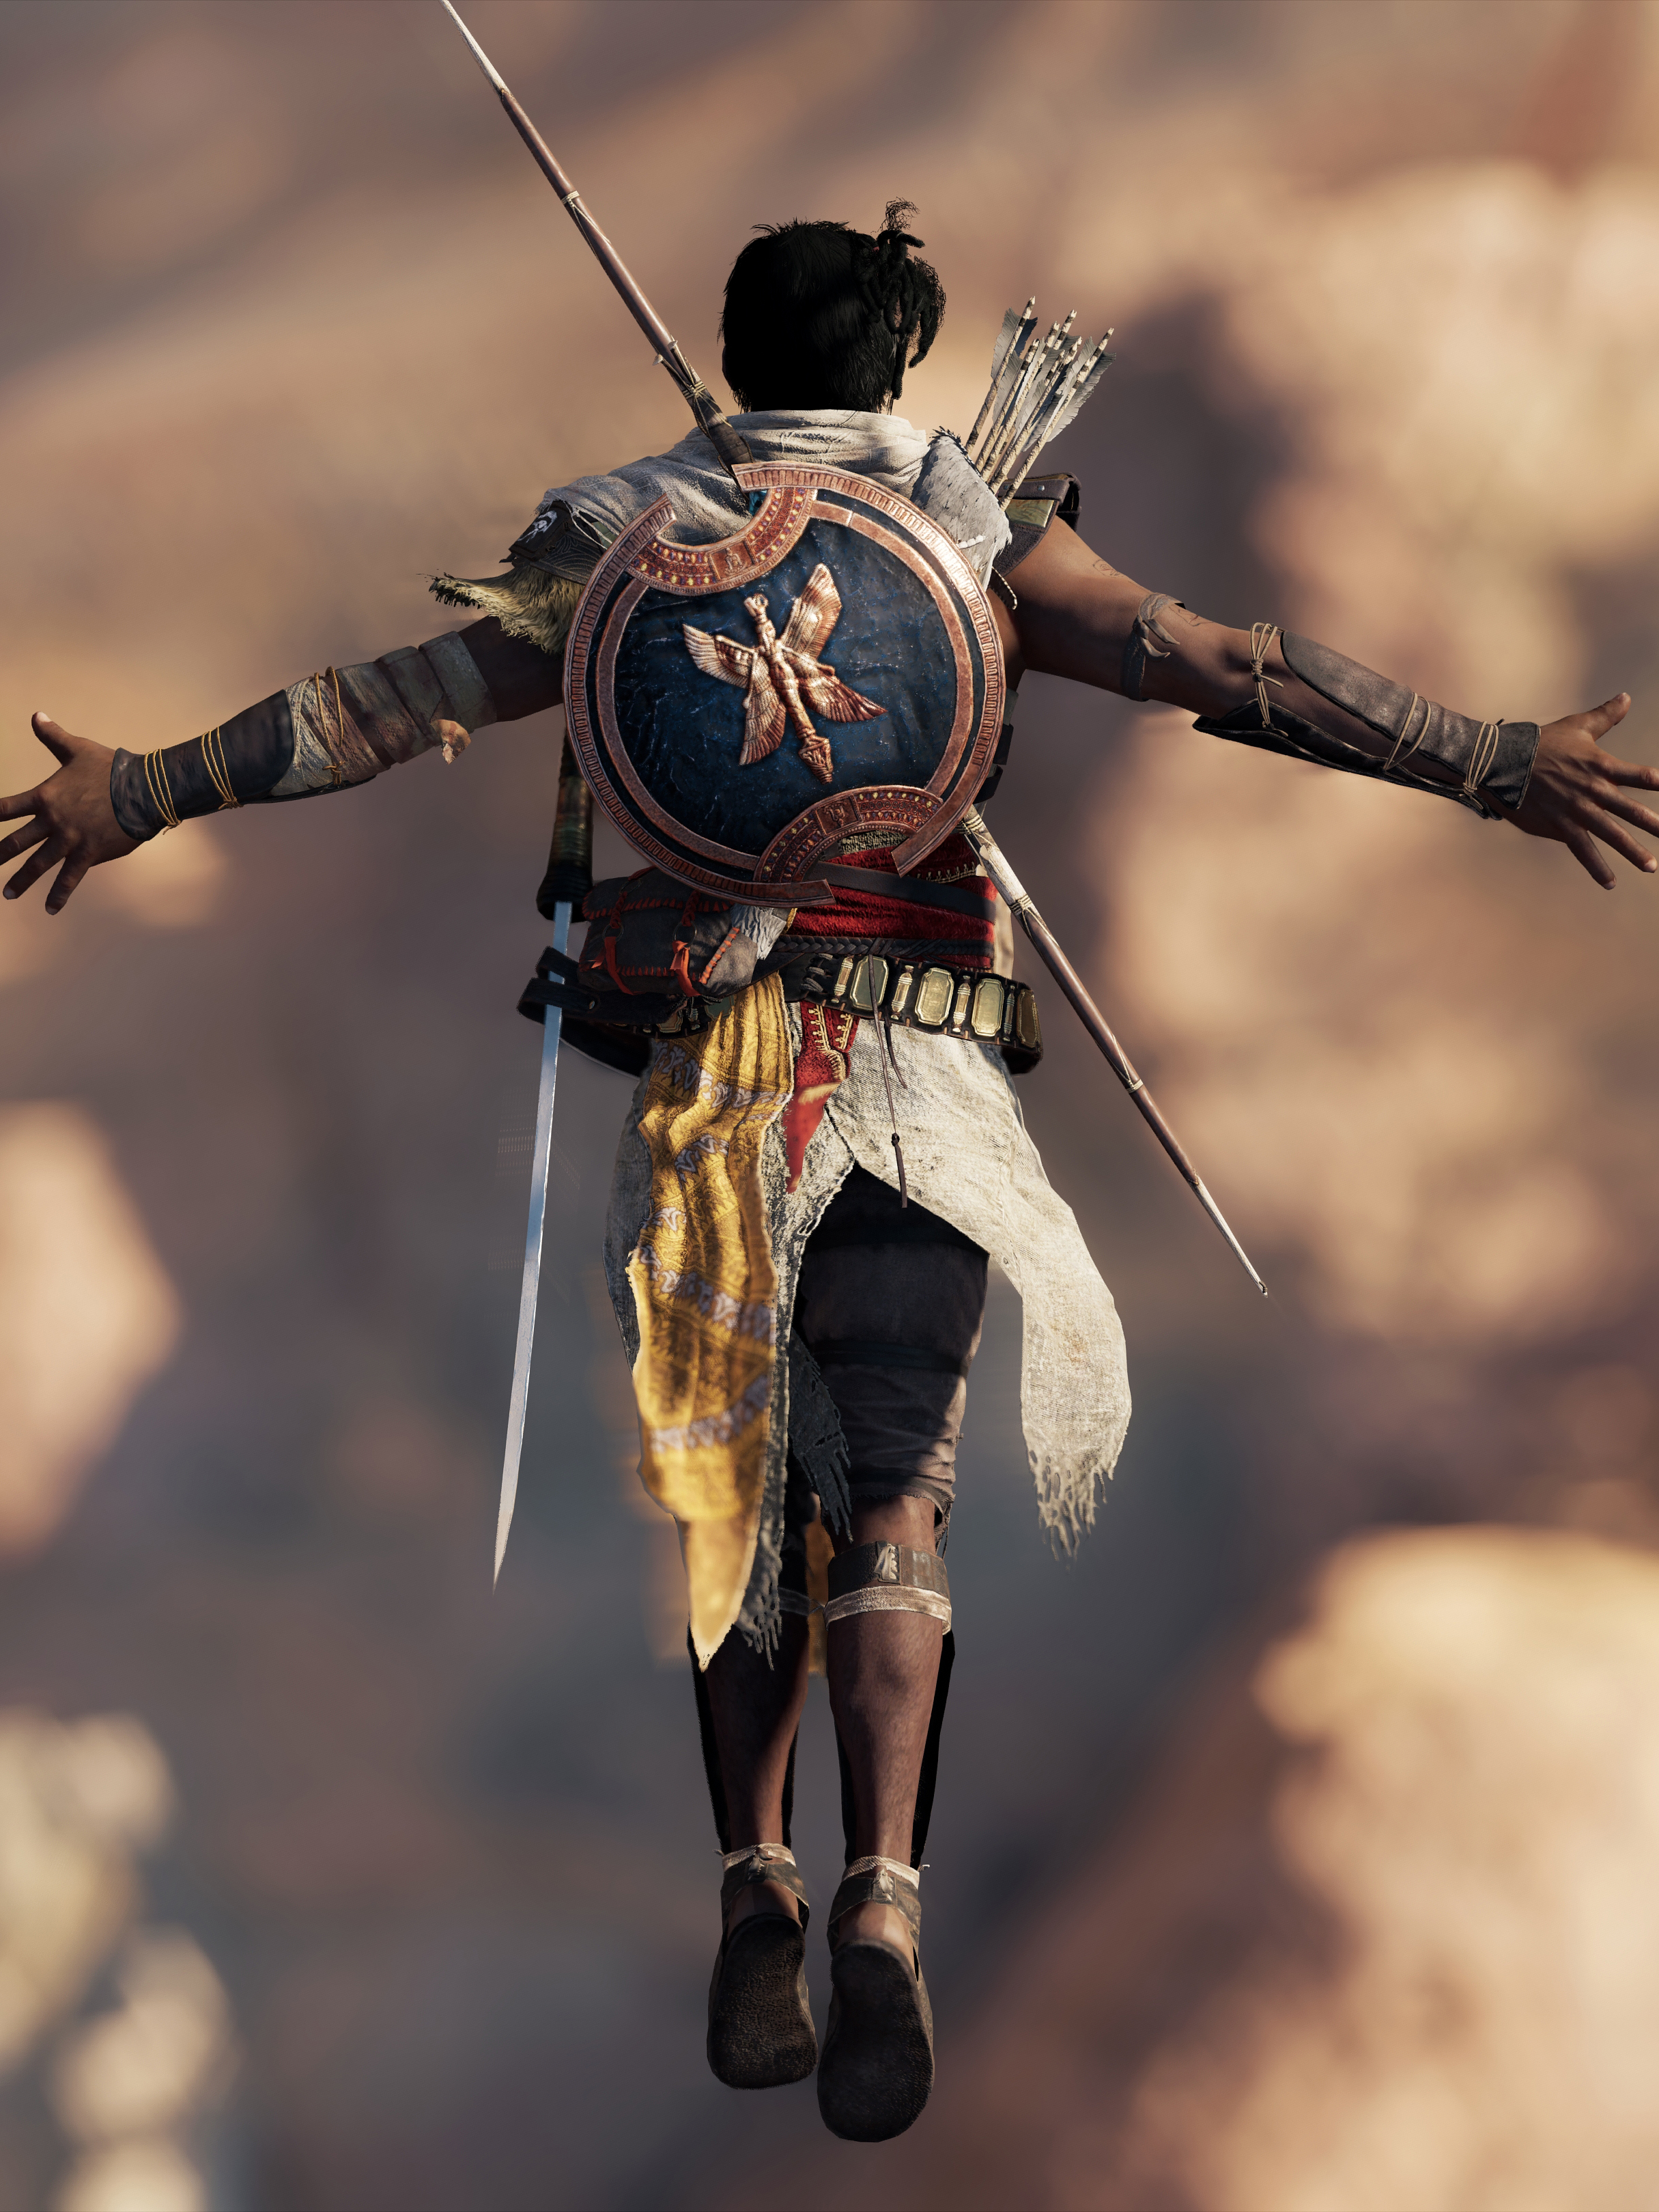 Hd Wallpapers Assassins Creed Top 15 Assassin S Creed Origins Wallpapers For Your Pc And